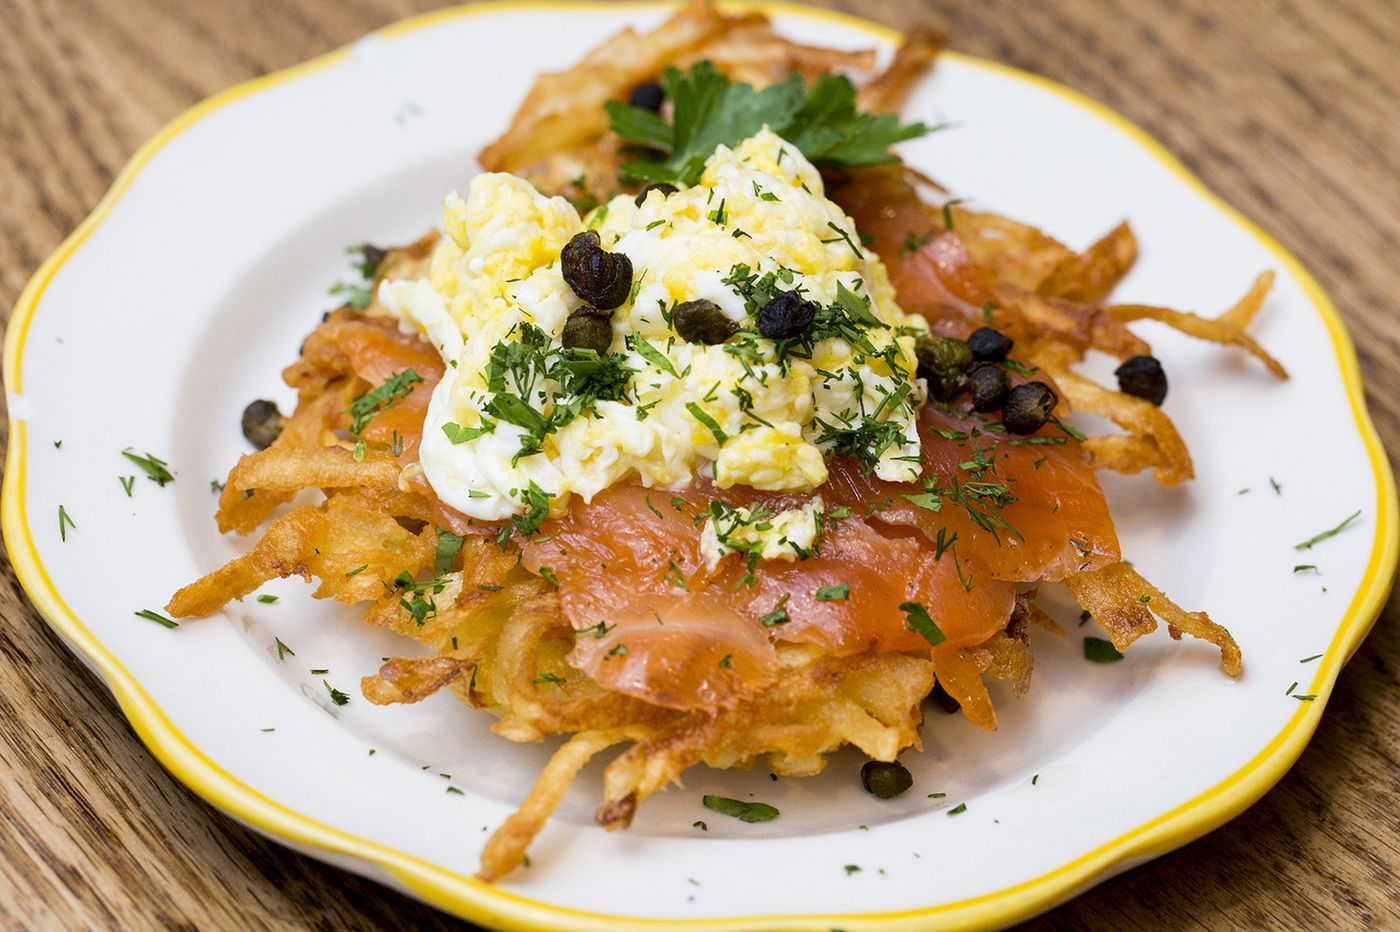 Add homemade lox to your latkes with deli-inspired Hanukkah ideas from Middle Child